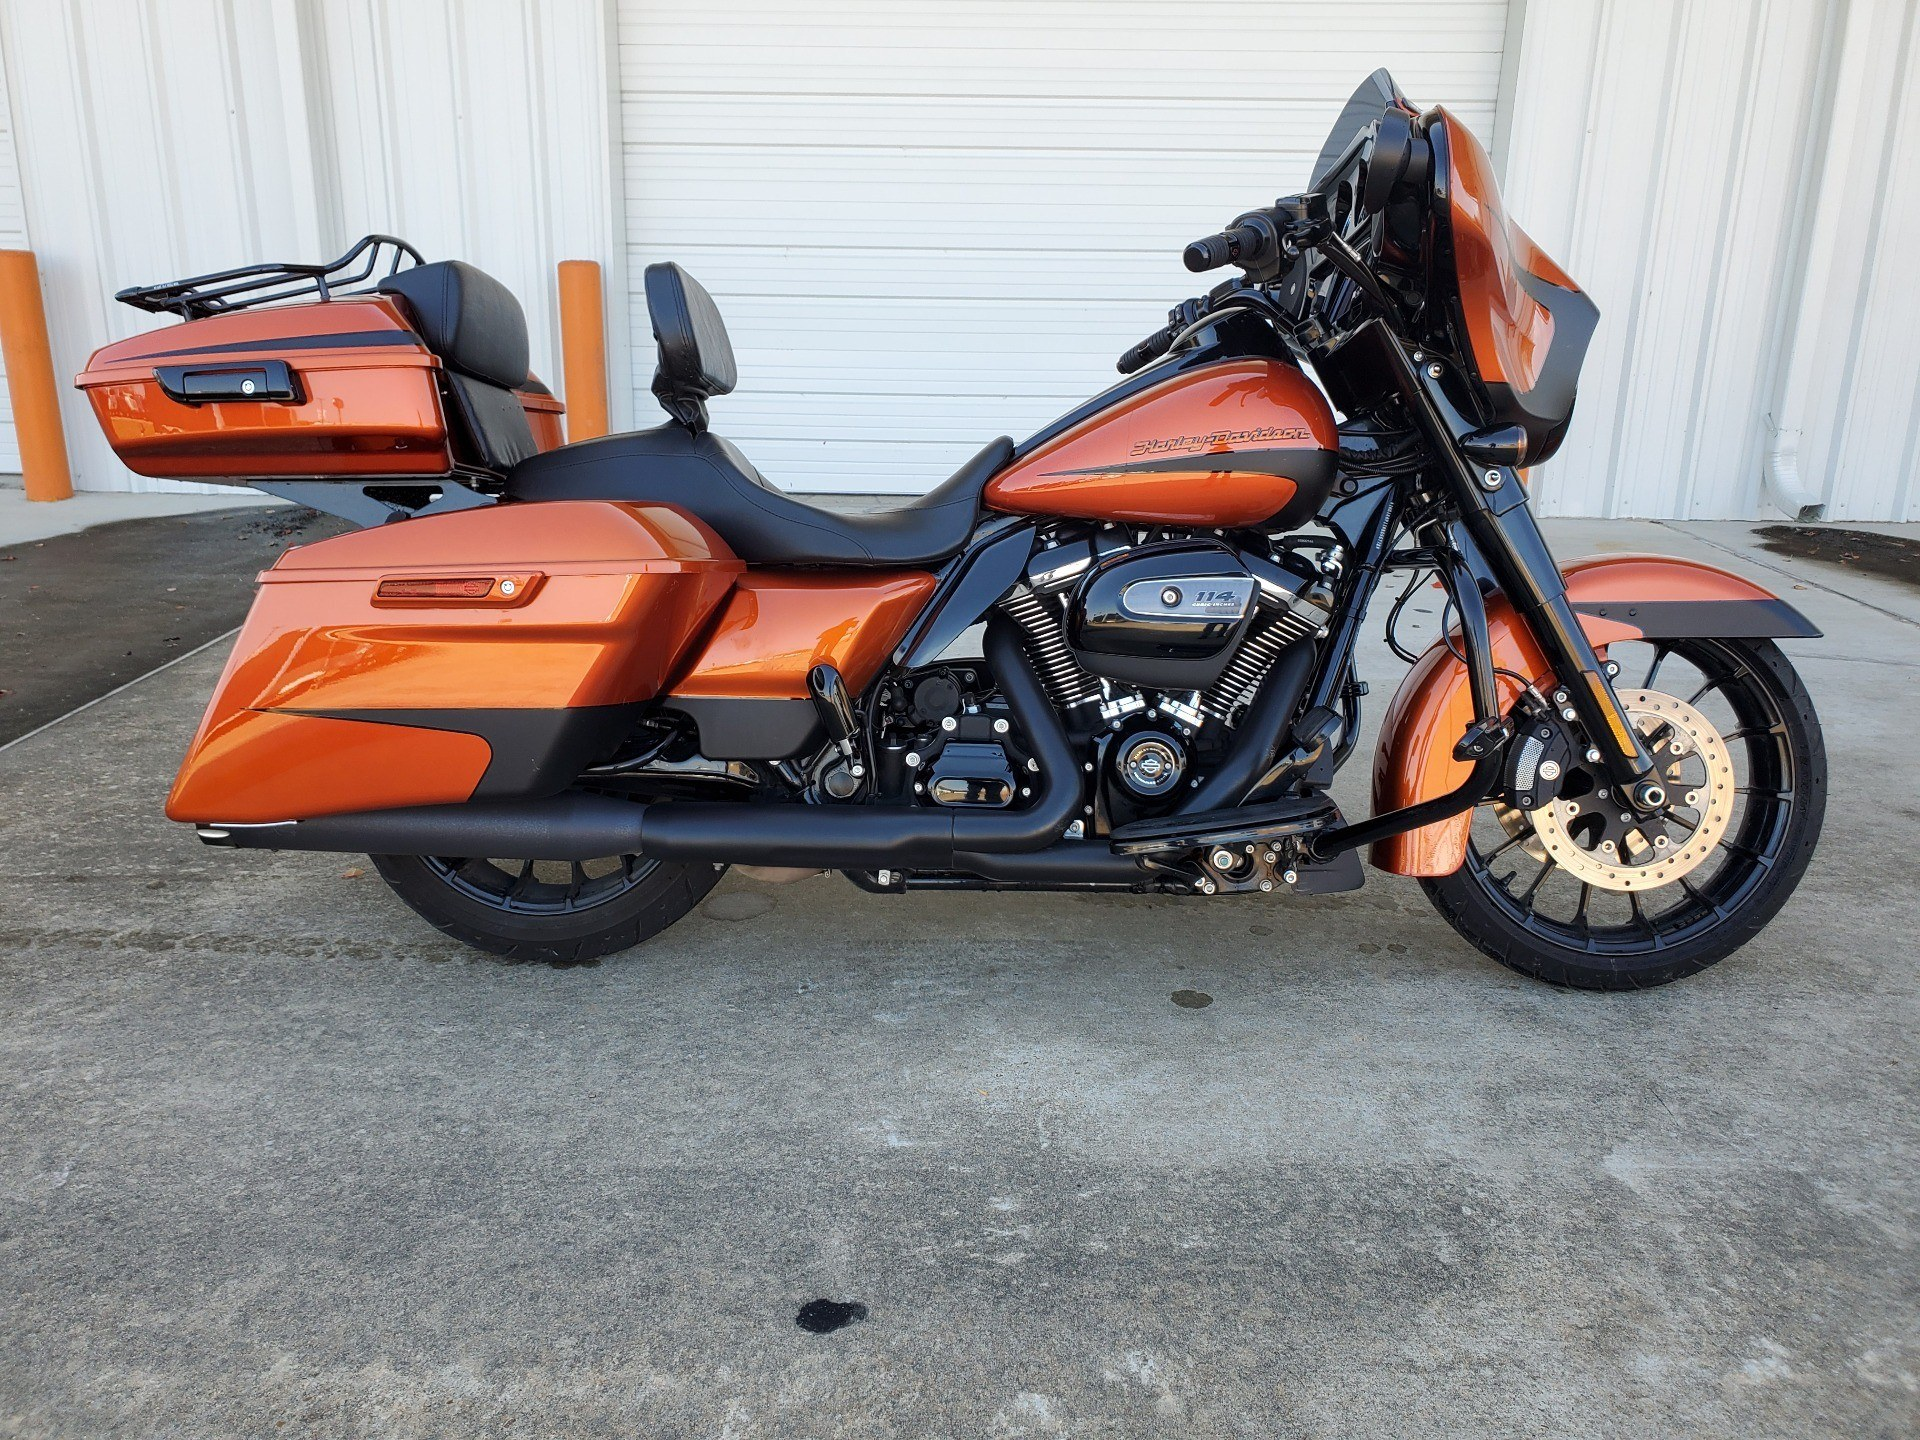 2019 Harley-Davison Street Glide Special for sale near me - Photo 15